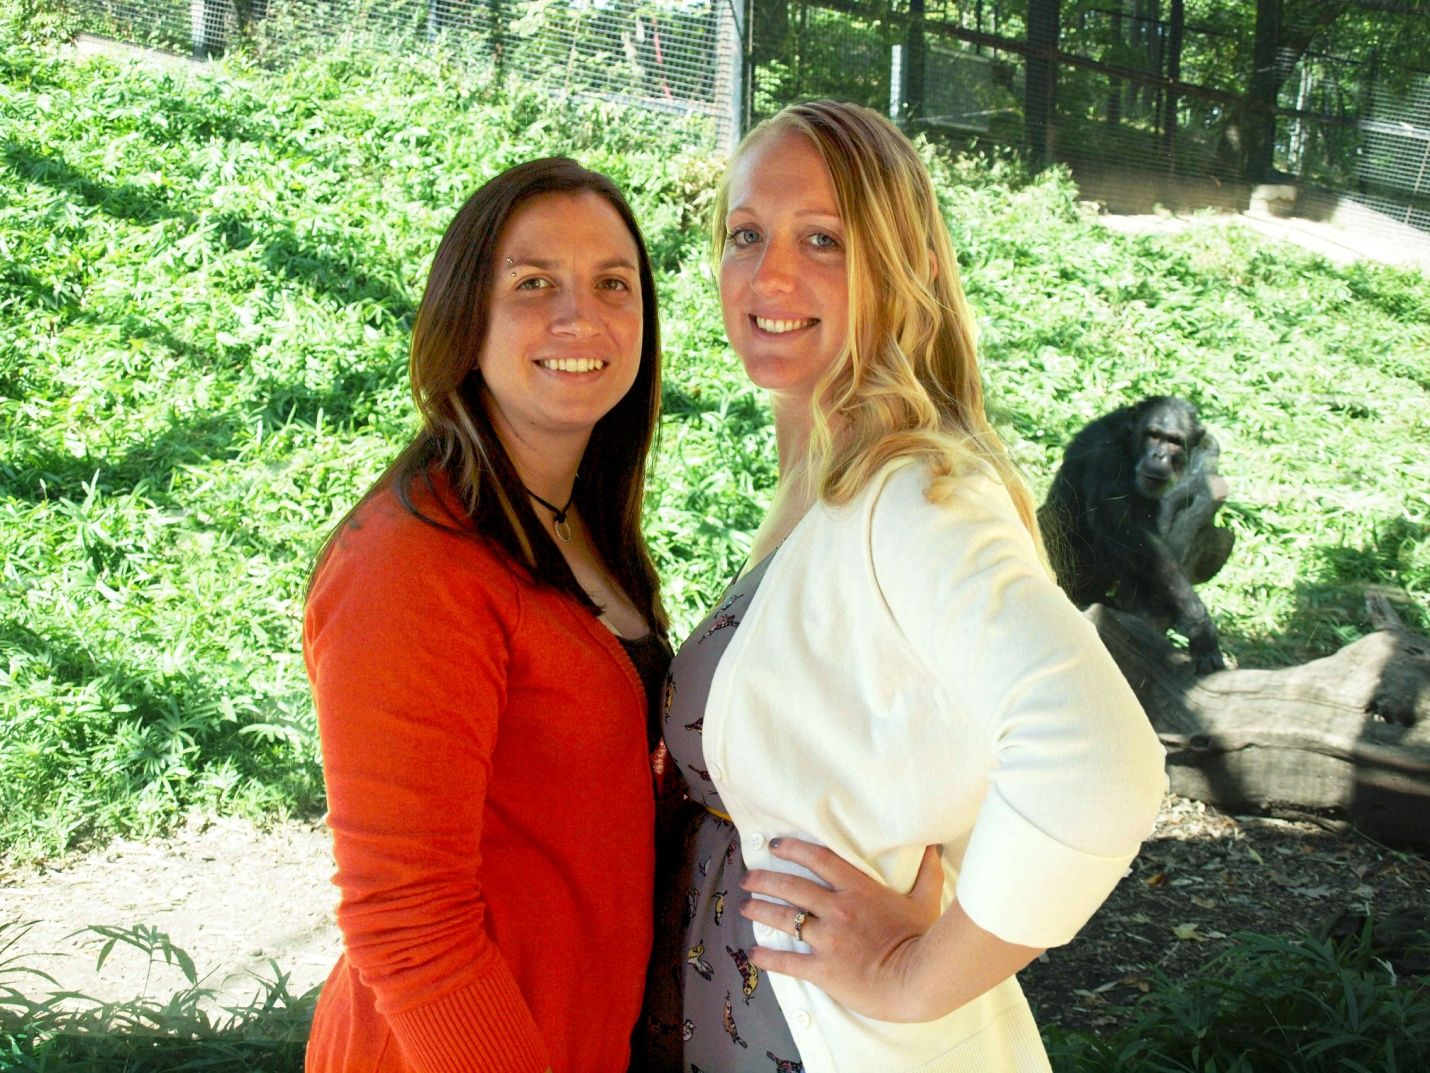 Kristine and I with Louie, one of the chimpanzees she cares for at the zoo.